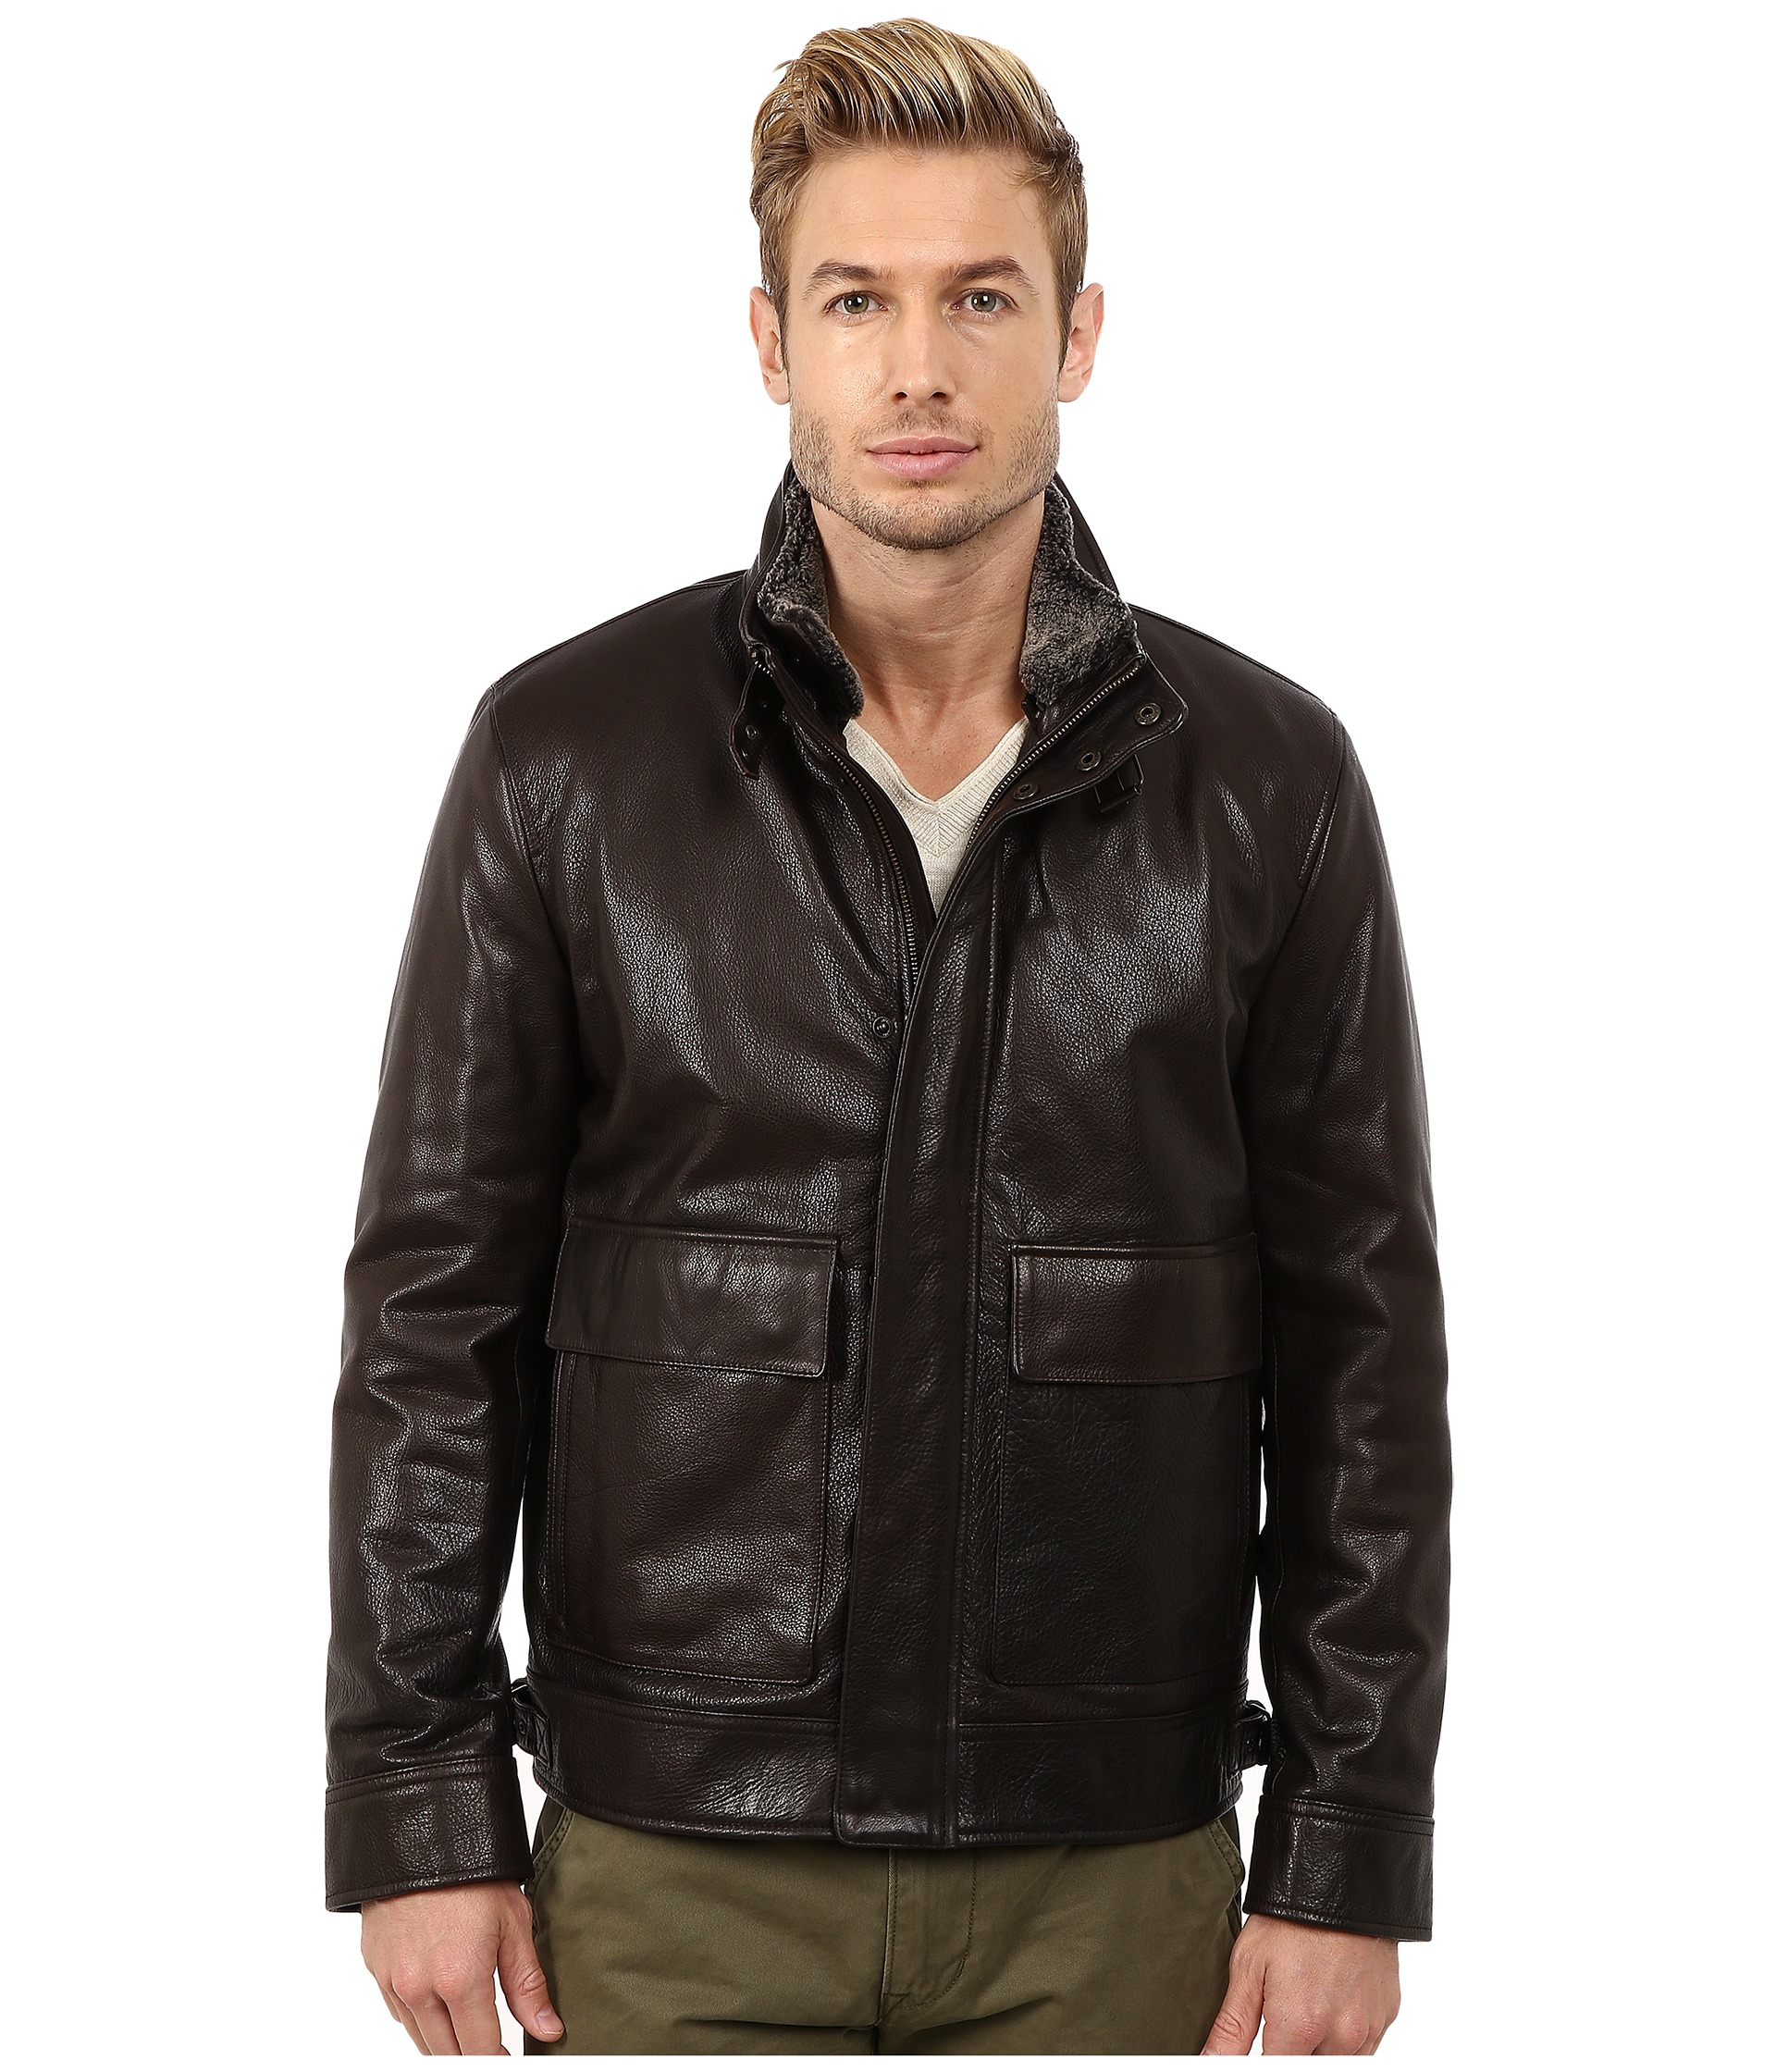 Spanish Jackets for Men - Bing images